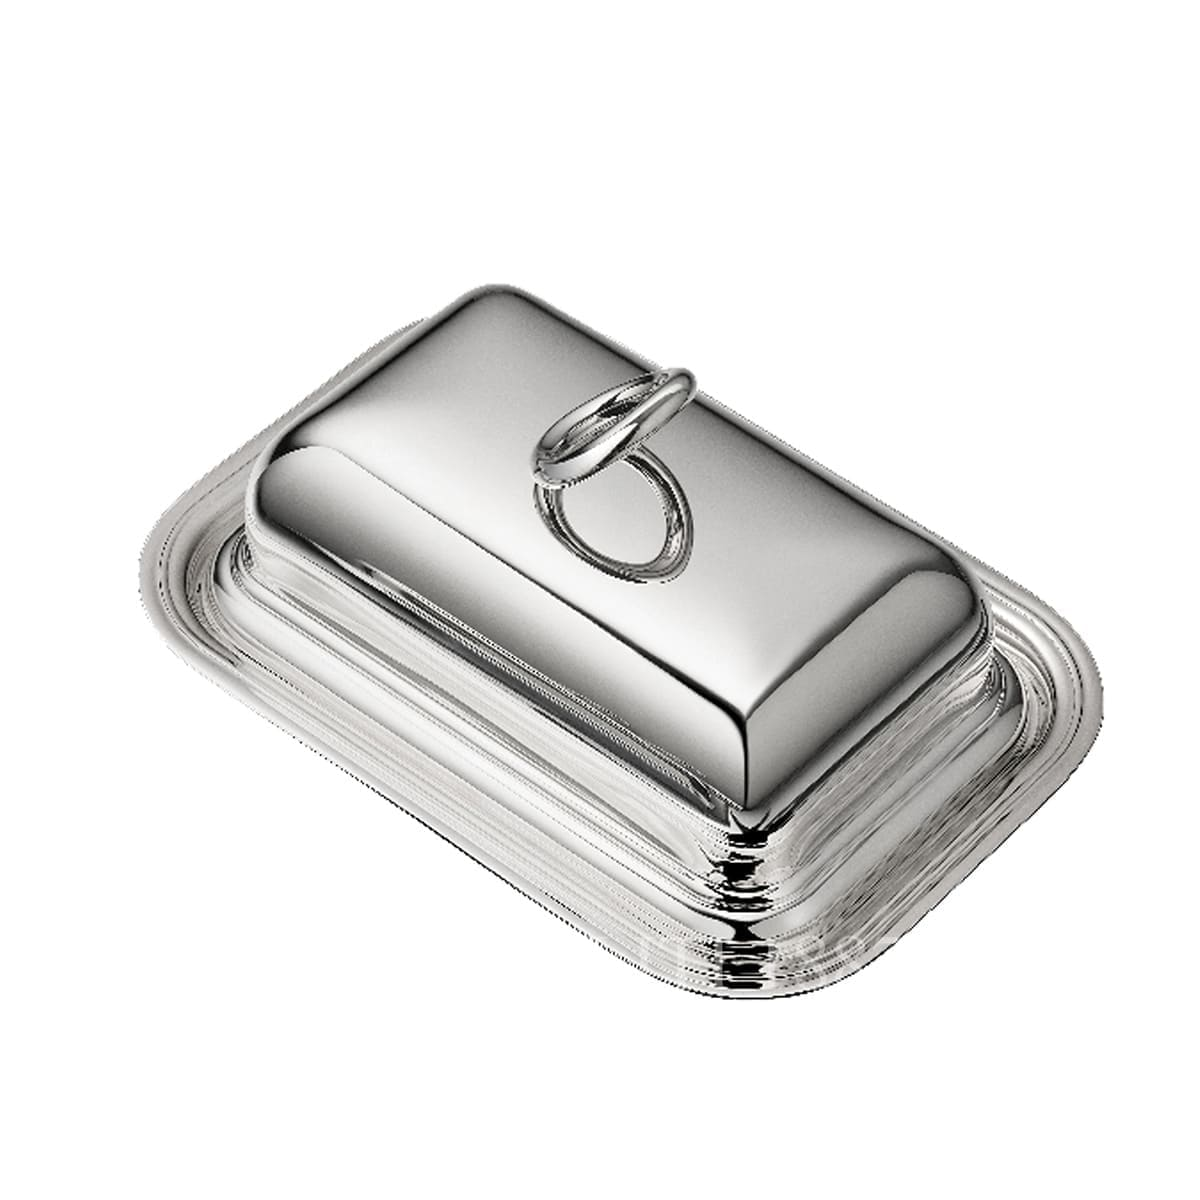 Christofle Vertigo Silver Plated Rectangular Butter Dish with Lid